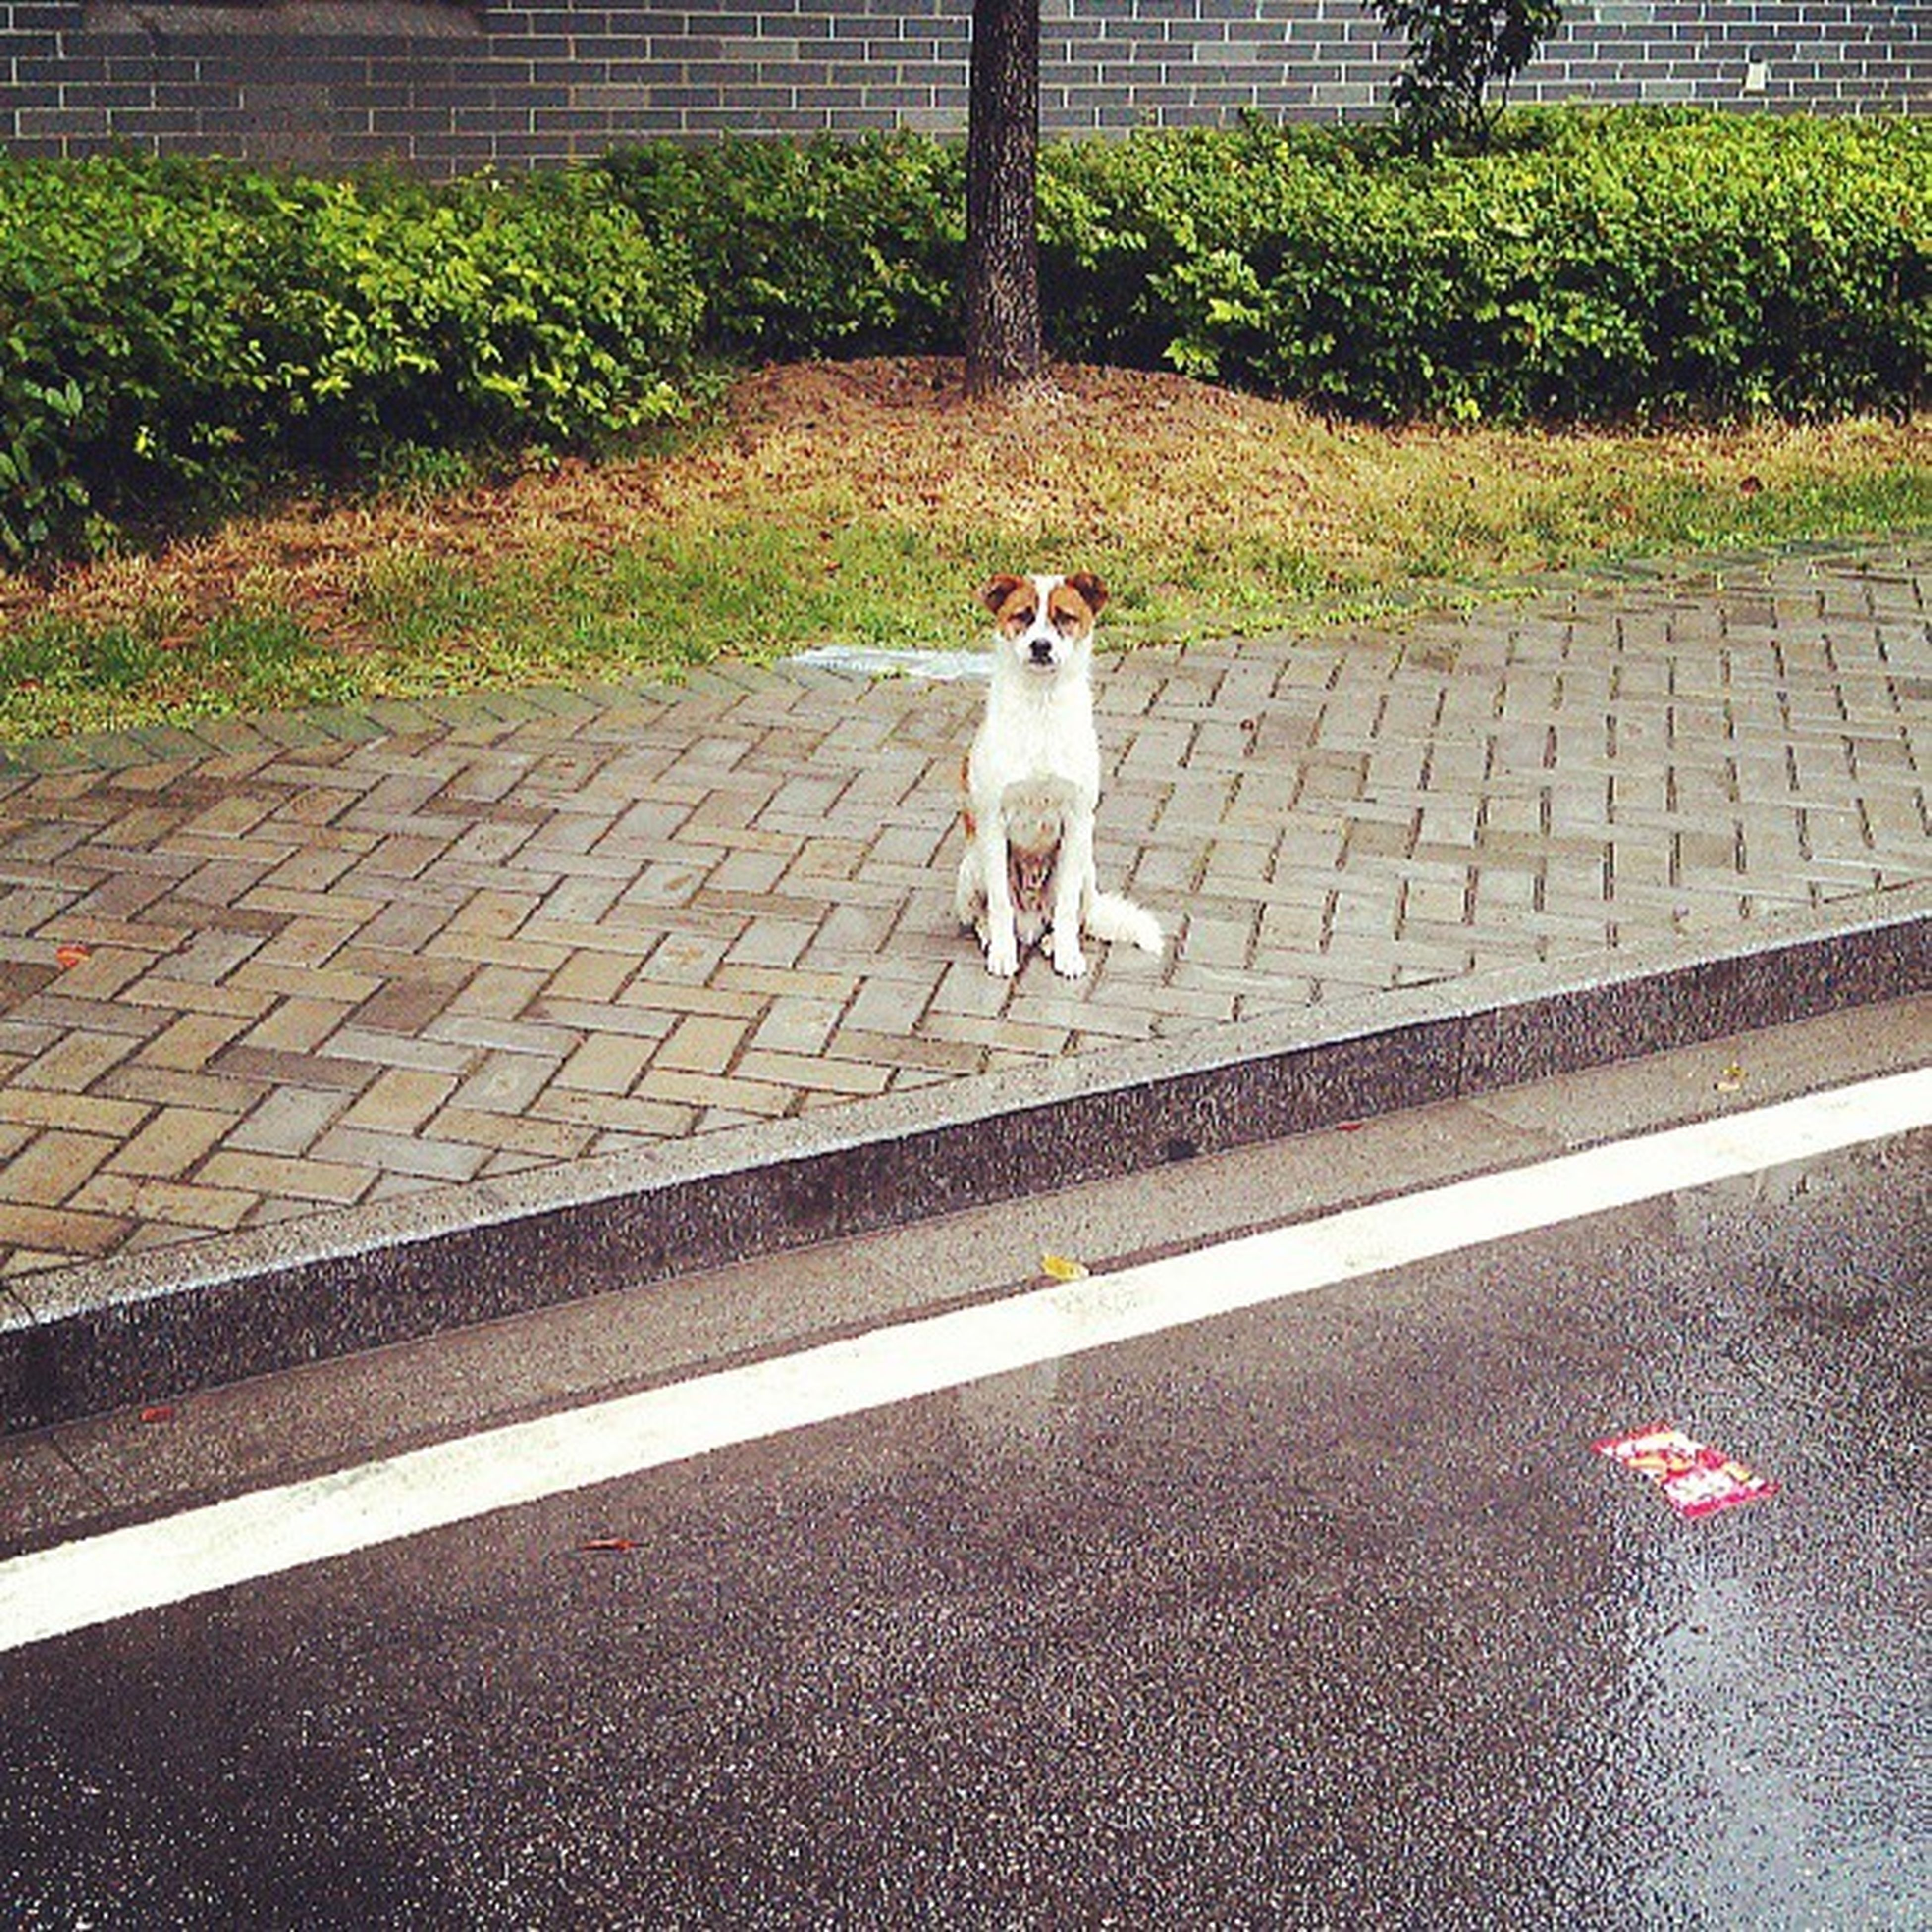 domestic animals, pets, dog, one animal, animal themes, mammal, full length, white color, grass, road, street, walking, high angle view, pet leash, outdoors, standing, day, no people, portrait, road marking